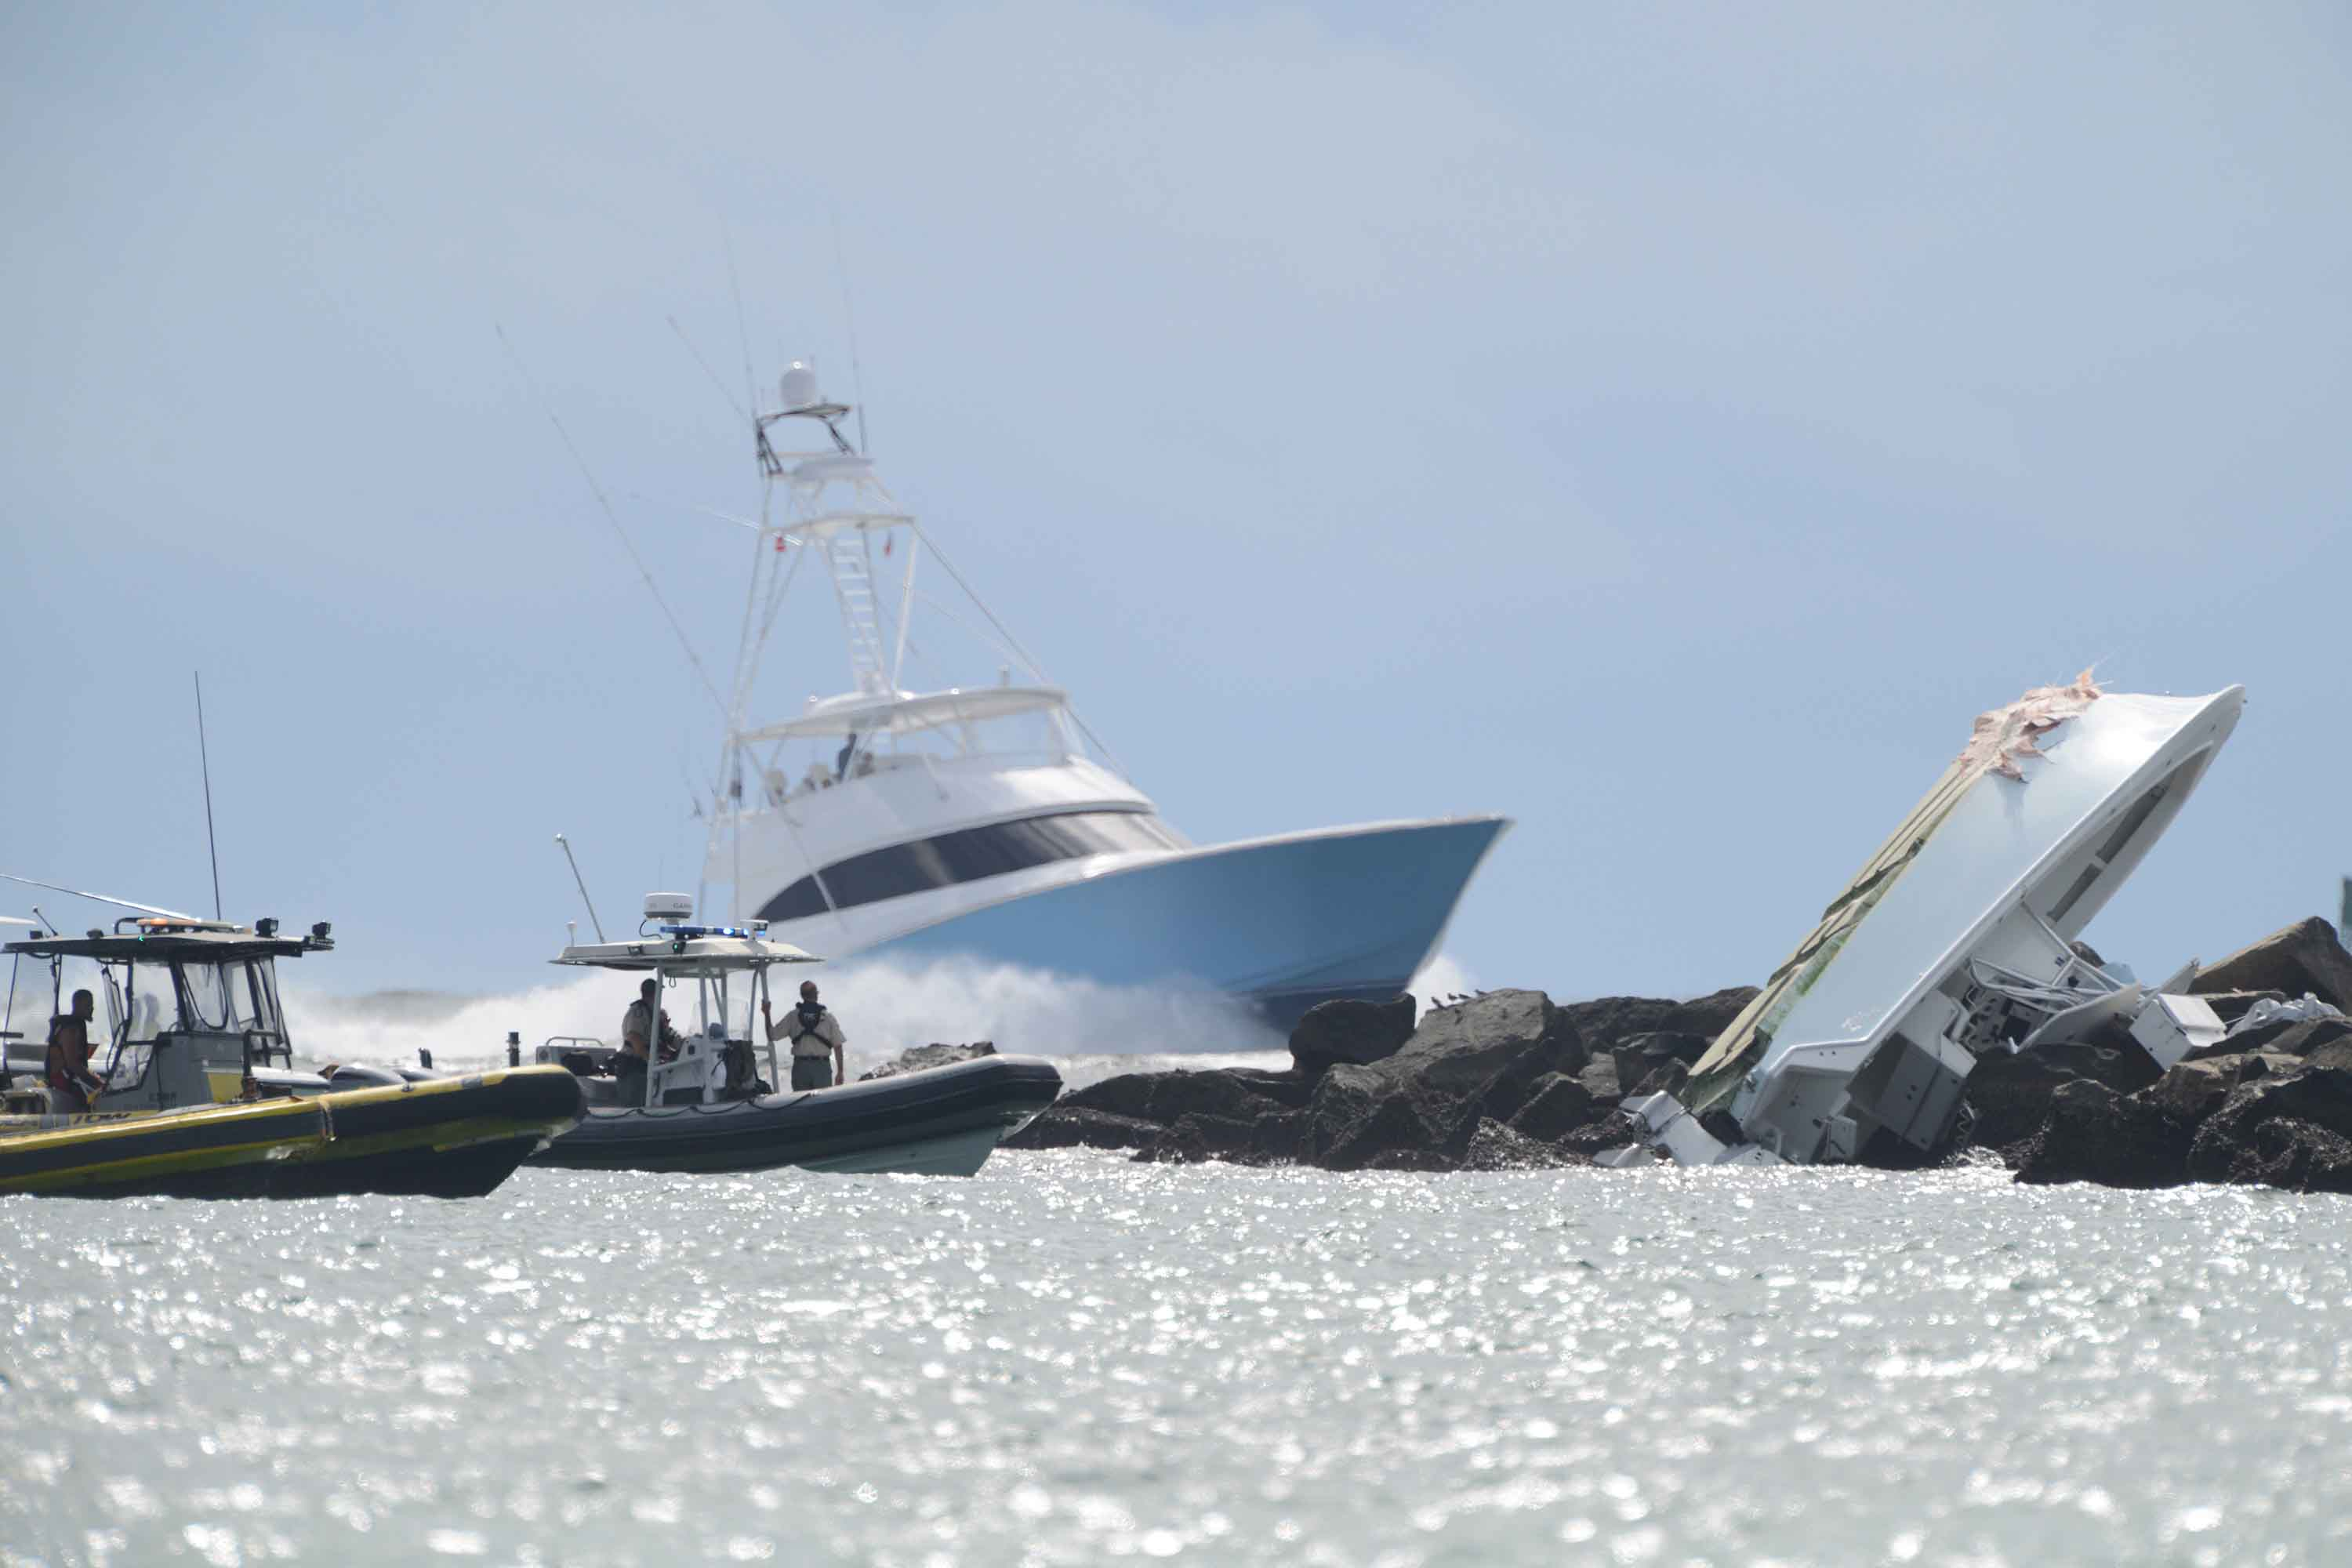 Investigators look over the overturned boat in which Miami Marlins pitcher Jose Fernandez was killed, Sunday, Sept. 25, 2016, in Maimi Beach. (Joe Caveretta/Sun Sentinel/TNS)